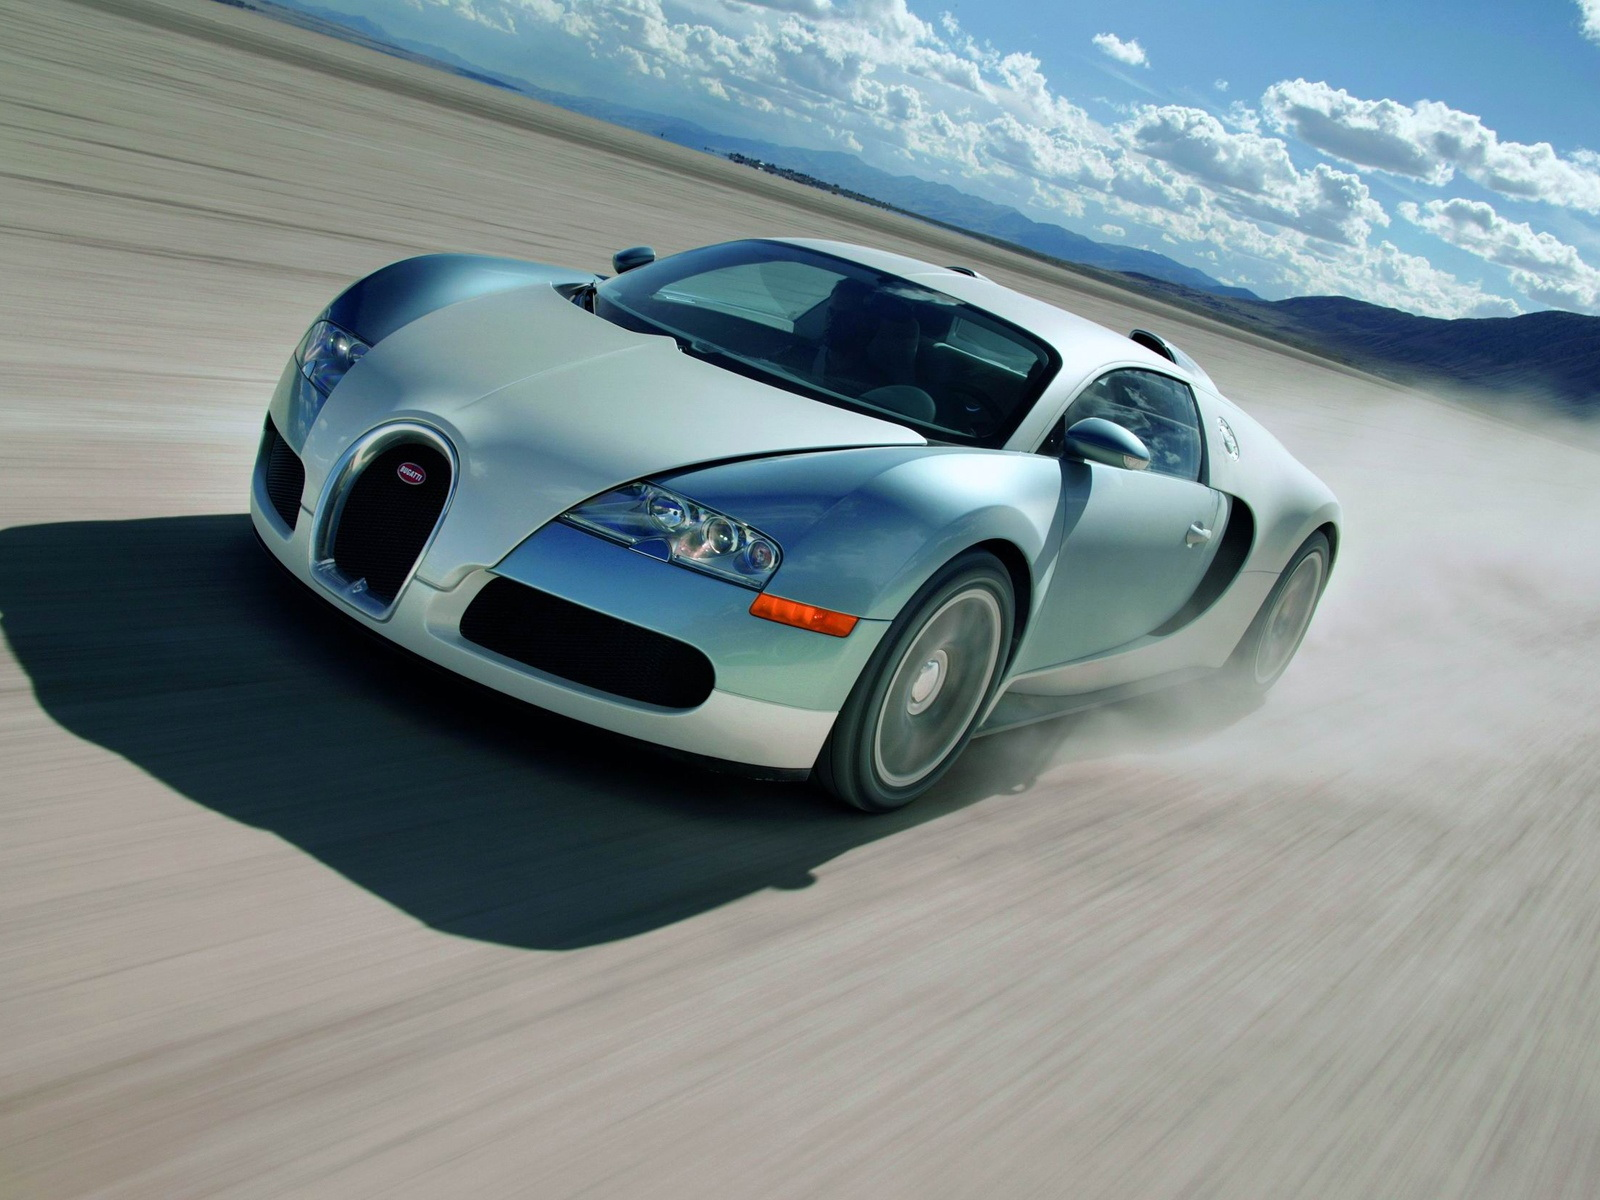 Bugatti racing car at high speed, wallpaper.